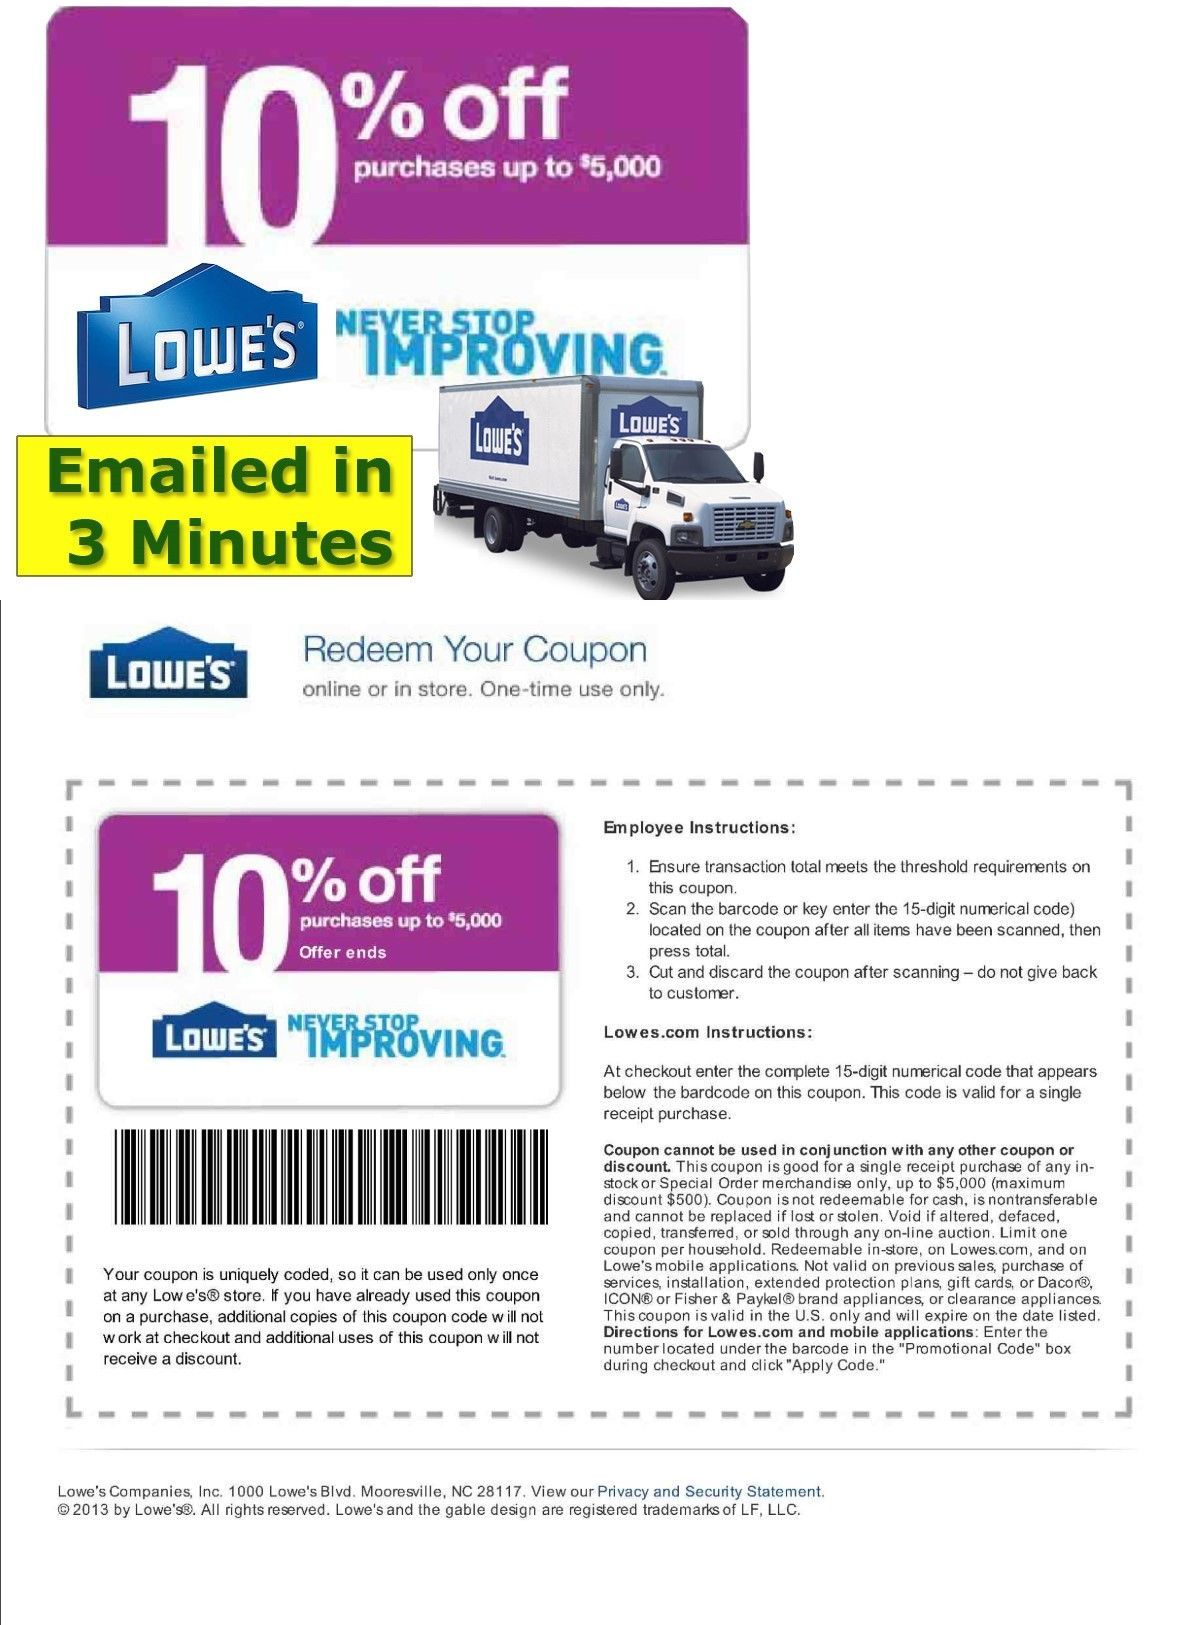 image about Lowes 10% Printable Coupon named Discount codes: (5X) 5 Lowes 10% Off Printable-Coupon Instantaneous E-mail